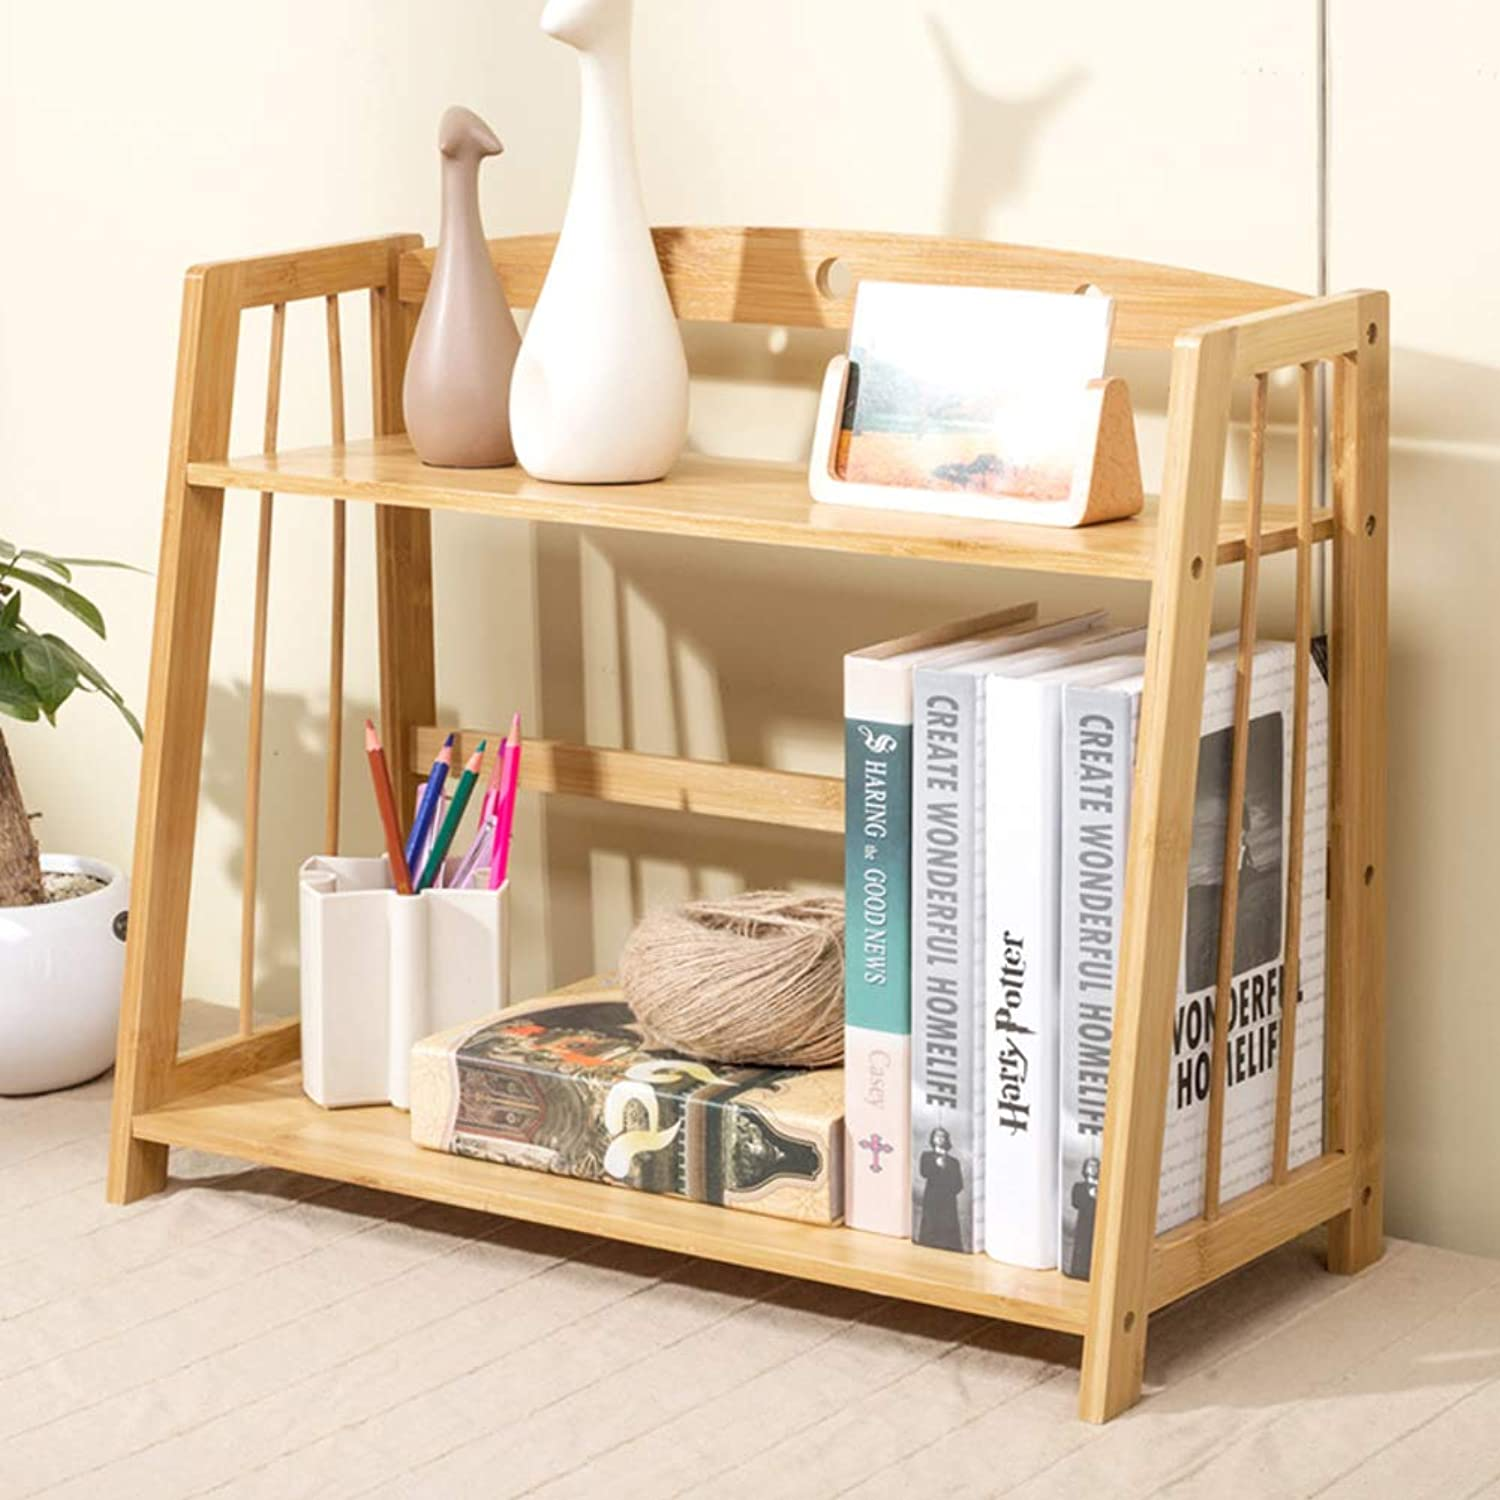 Bamboo Bookcase 2 Shelf,Desktop Bookshelf Space Saving Multipurpose Storage Organizer Shelves-A 52  42  25cm(20  17  10in)